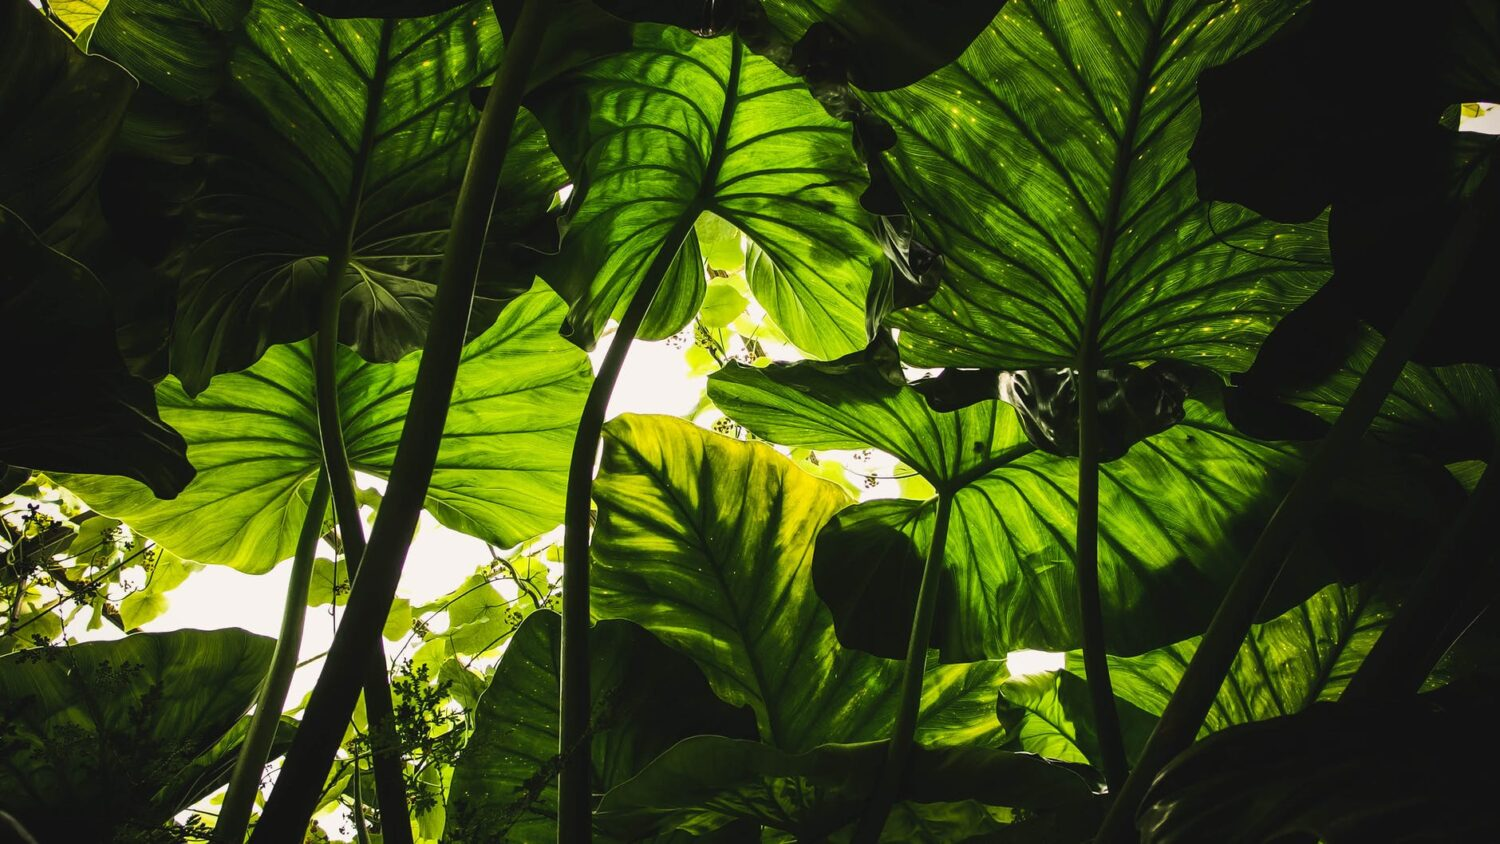 green leafed plants